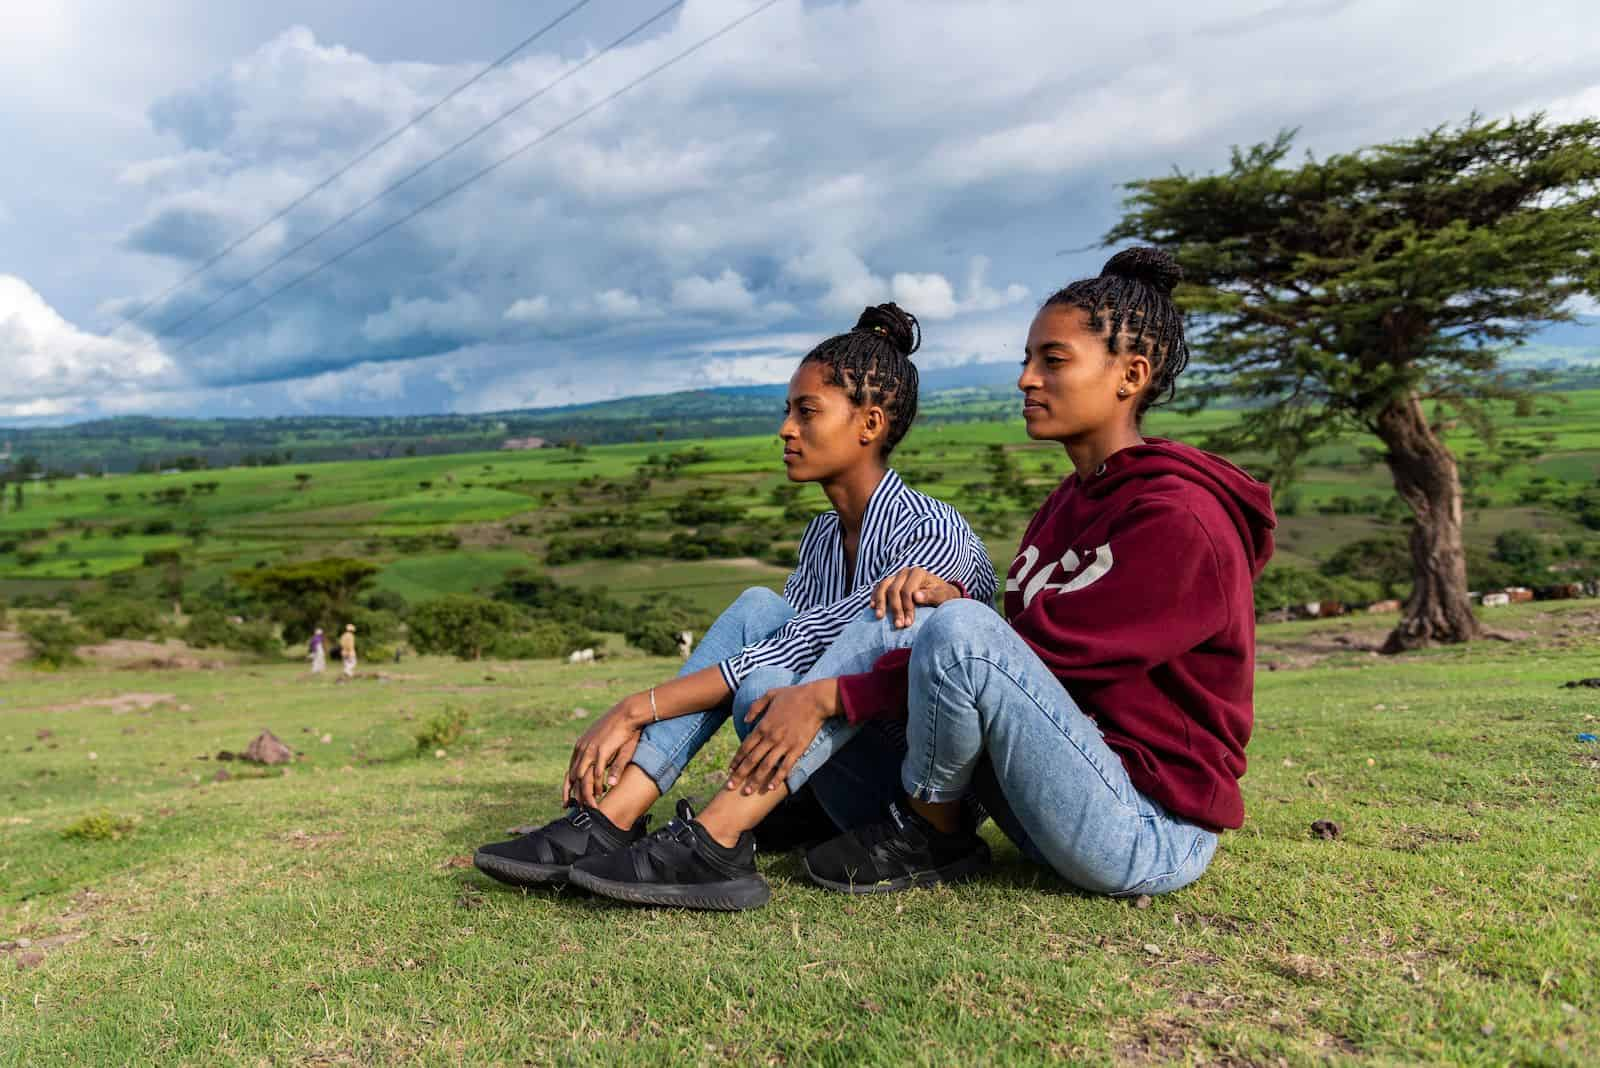 An orphan story: Two teenage girls sit on a hill and look to the distance.